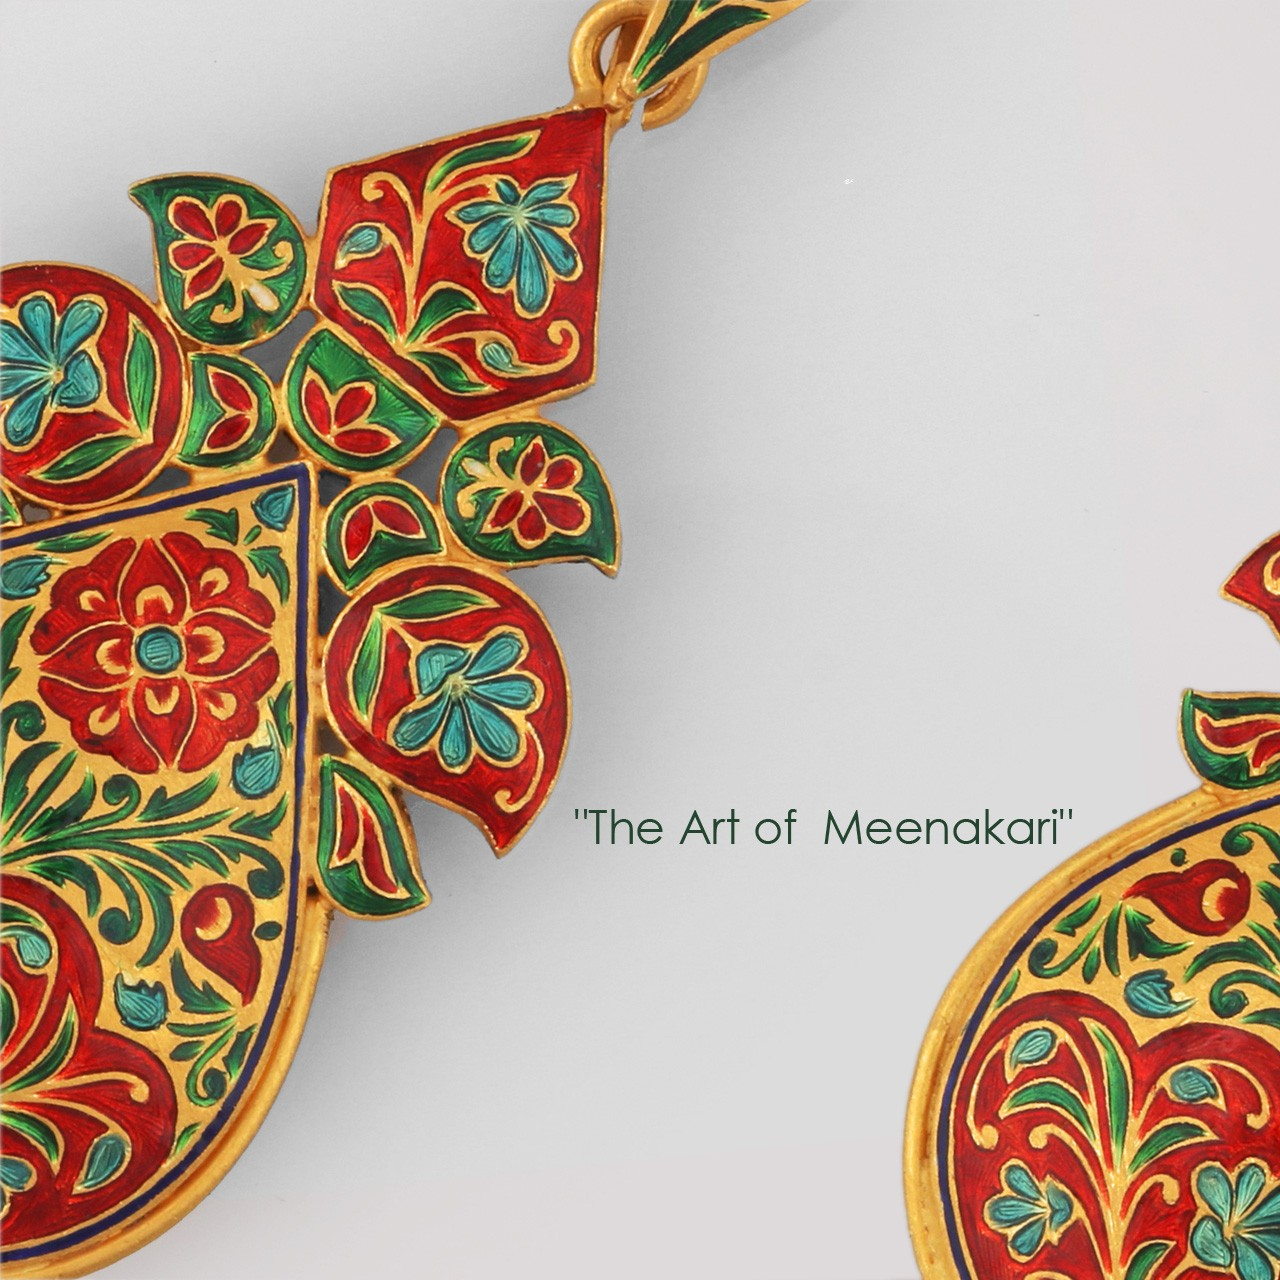 The Art of Meenakari